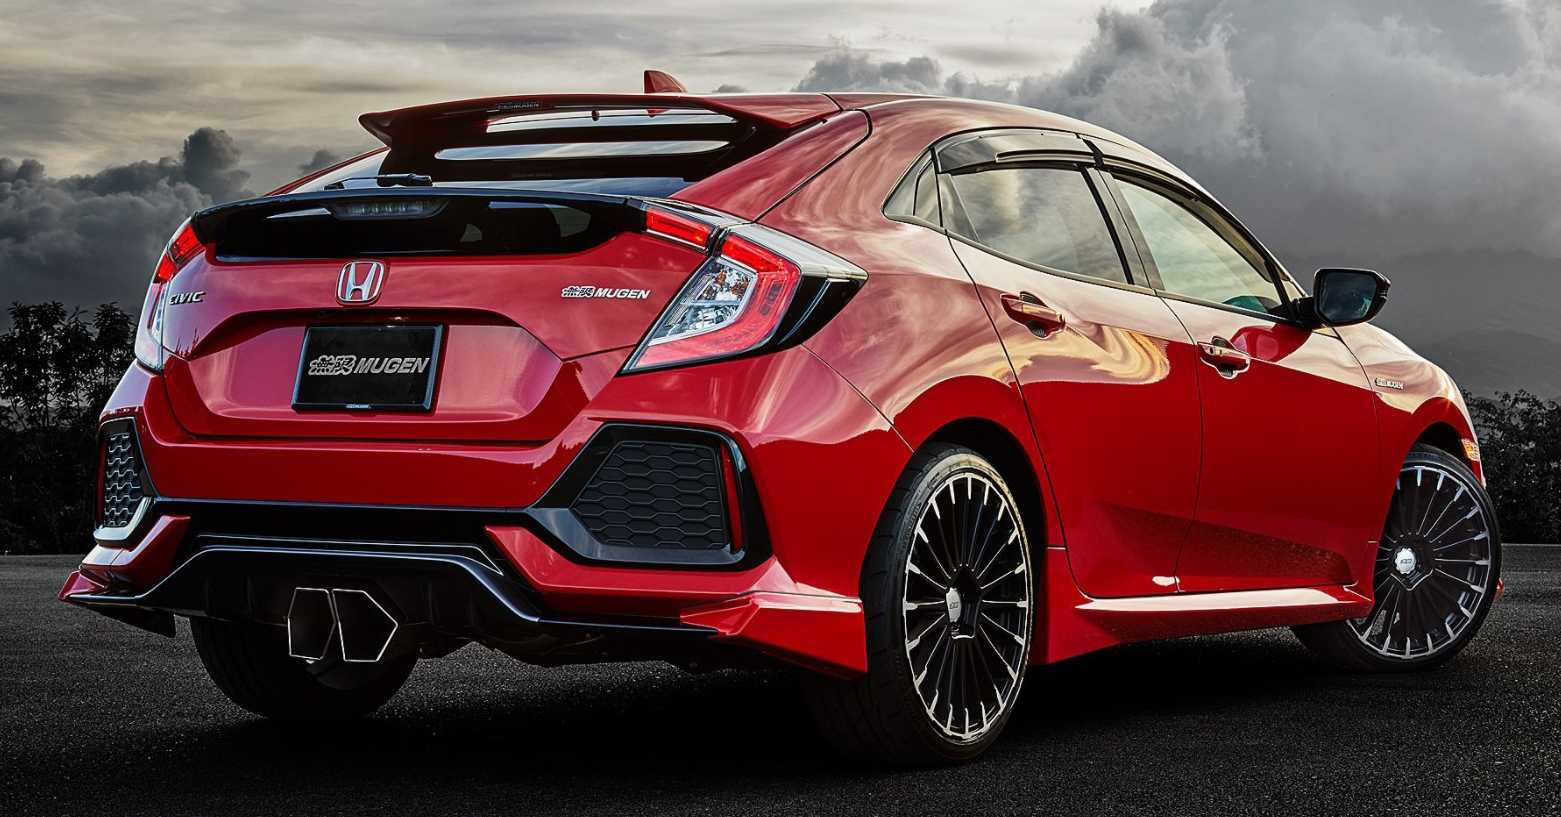 2020 Honda Civic Now Gets Support for Mugen Accessories